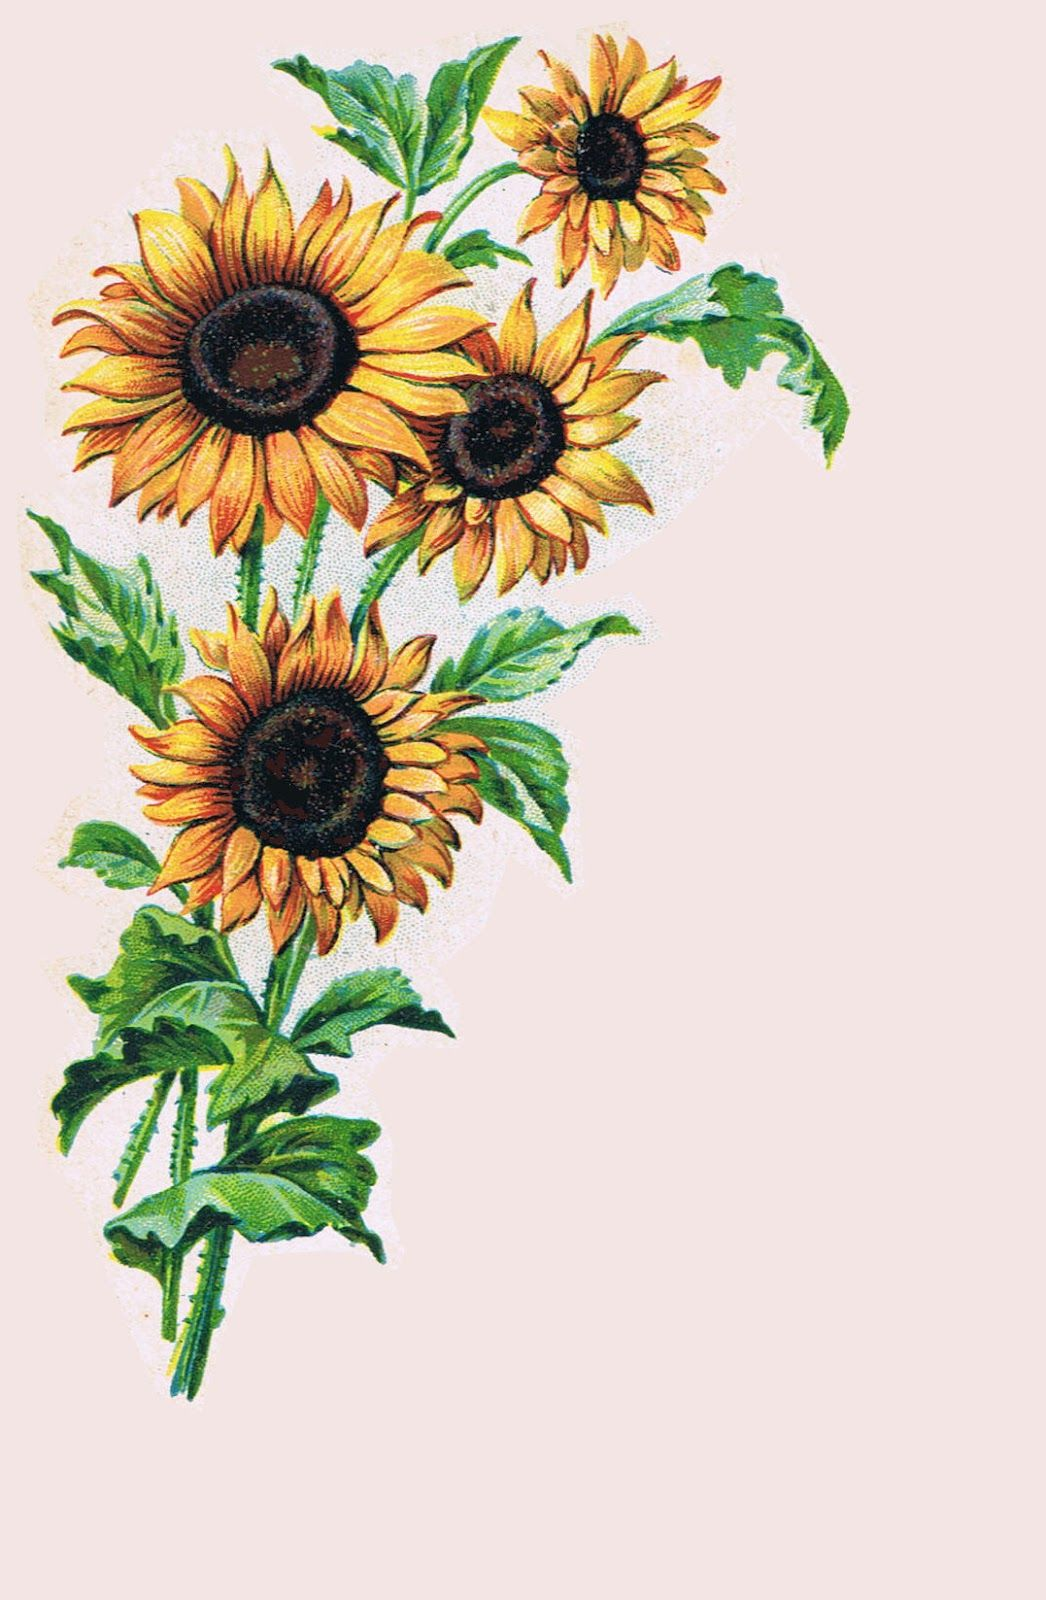 Uncategorized Sunflowers Drawing if instead of a gem or even flower we should cast the gift the